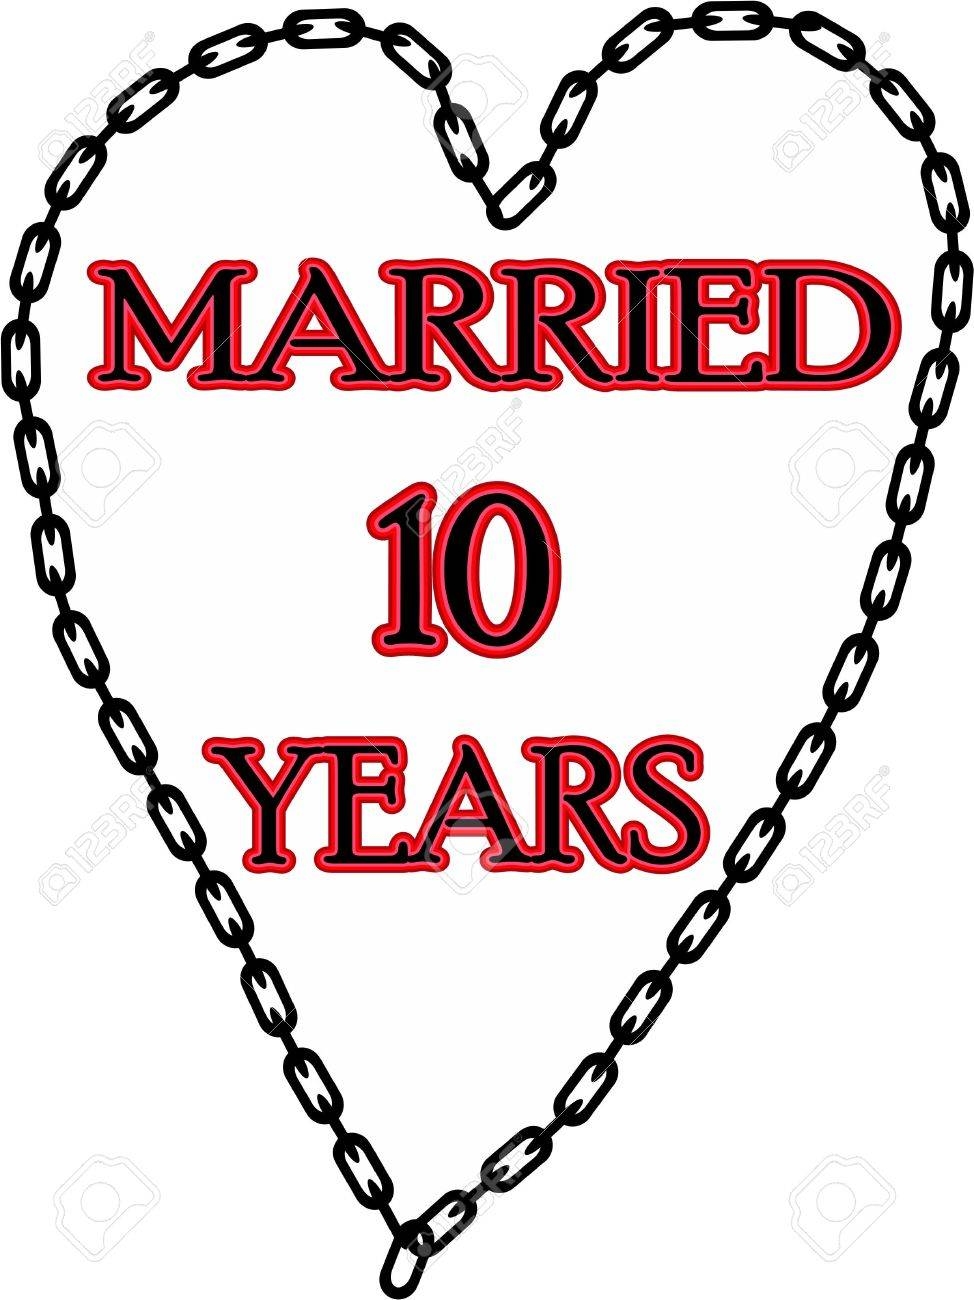 10 Year Wedding Anniversary.Humoristic Marriage Wedding Anniversary Chained For 10